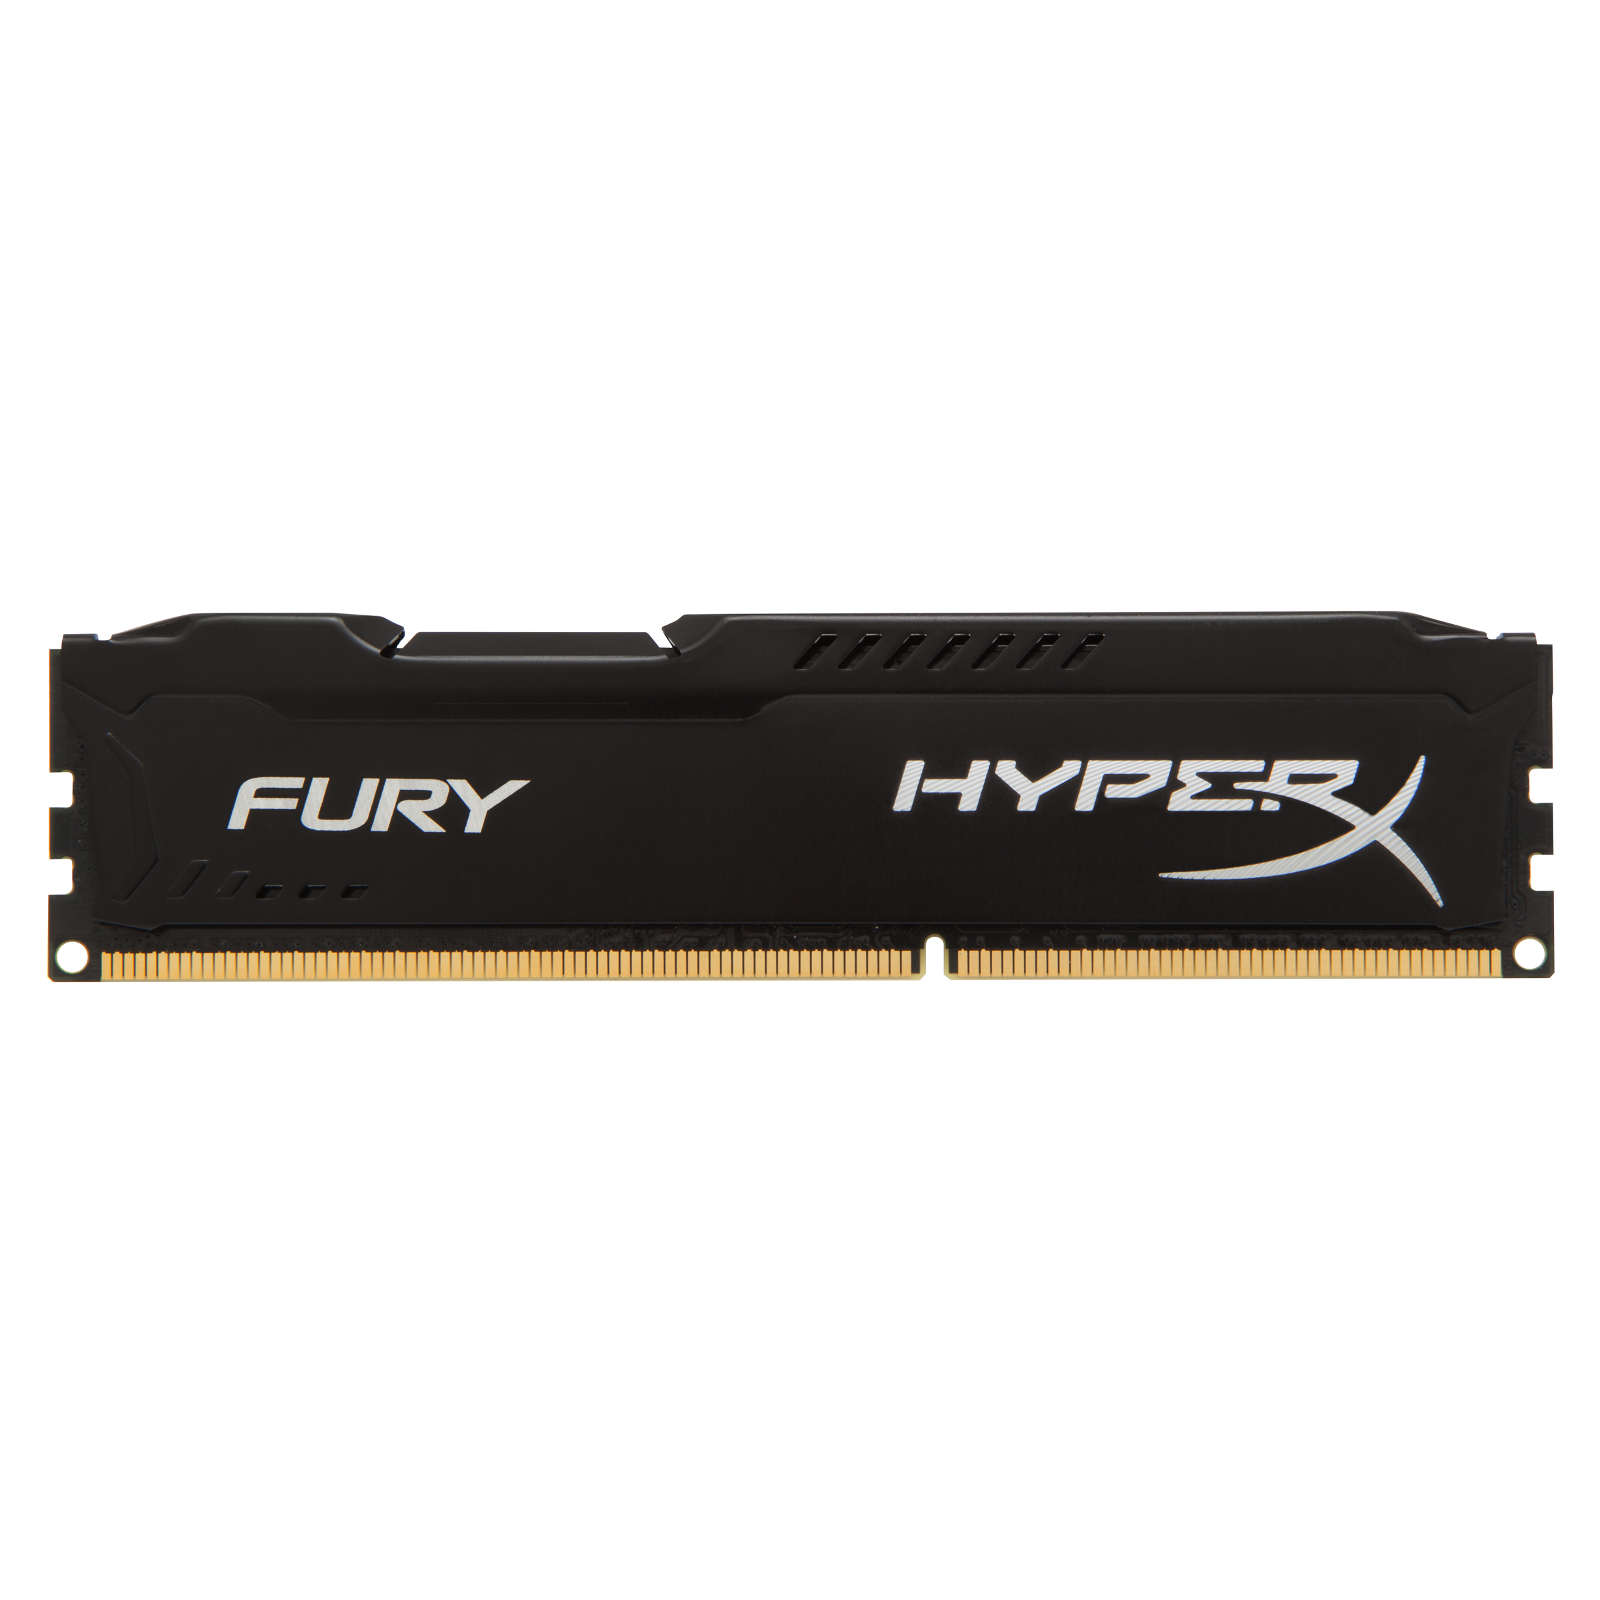 Kingston 8GB DDR3 1600MHz HyperX Fury Black Series